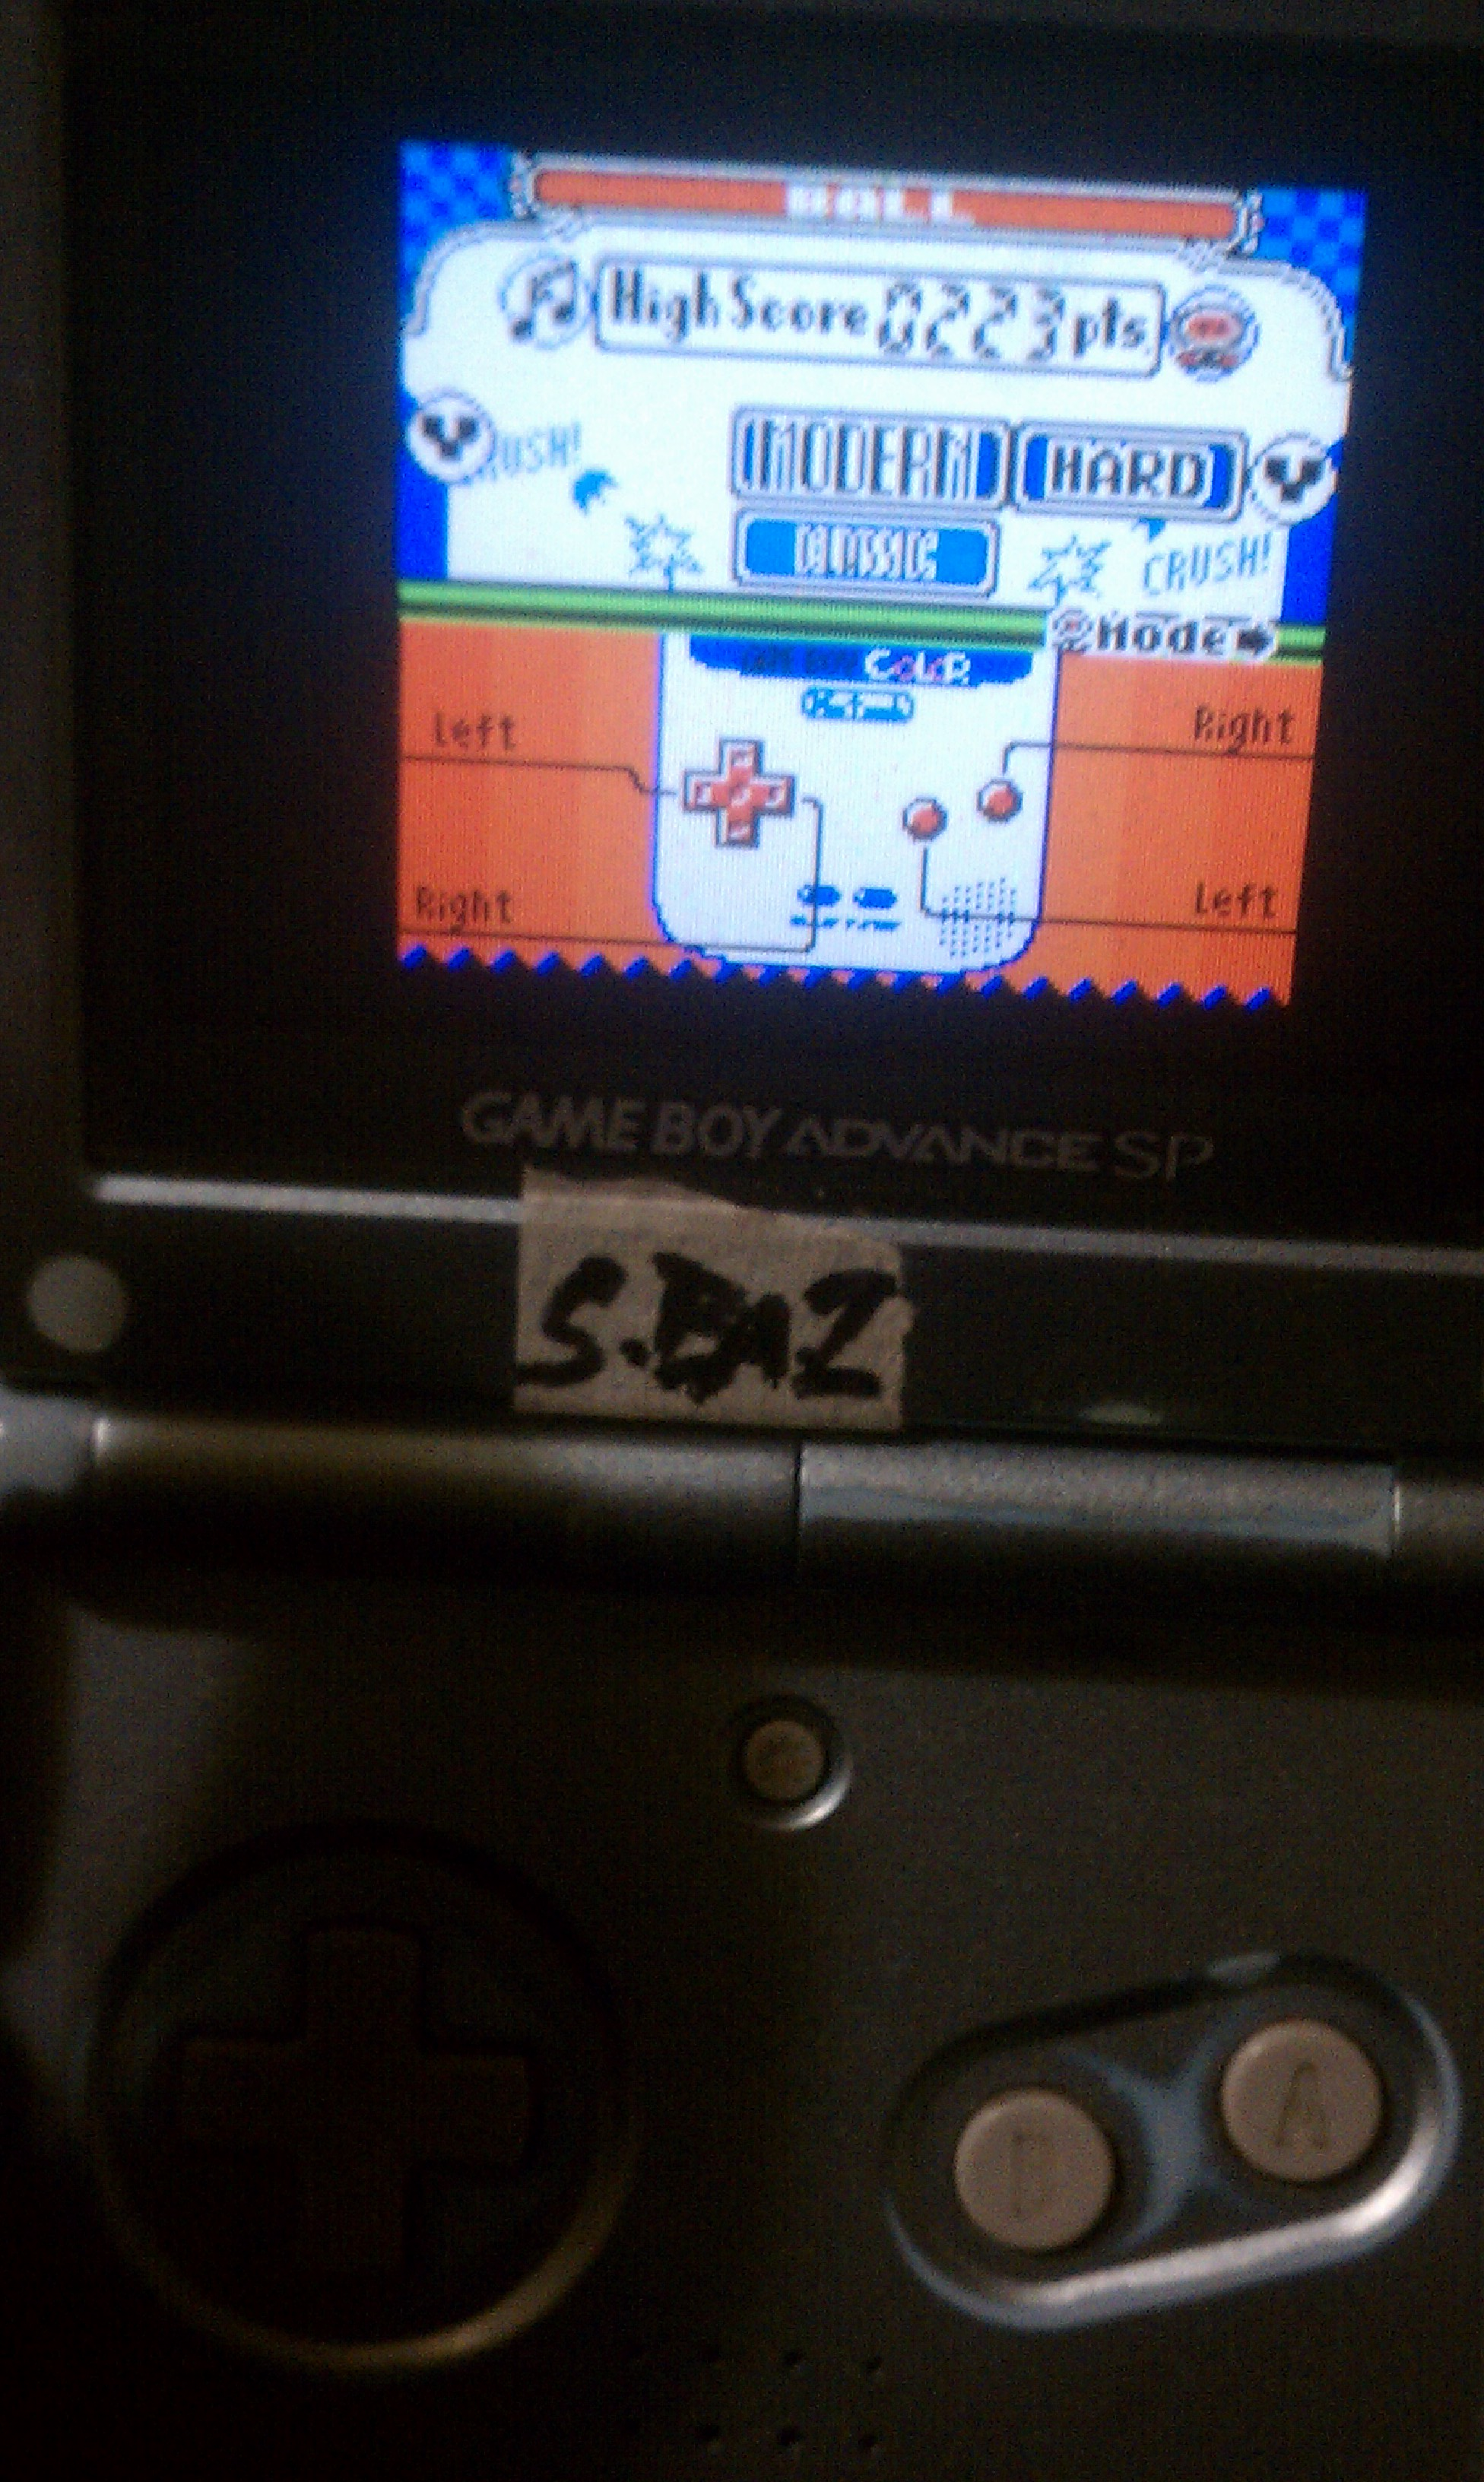 S.BAZ: Game & Watch Gallery 2: Ball [Modern: Hard] (Game Boy Color) 223 points on 2017-05-17 20:39:24